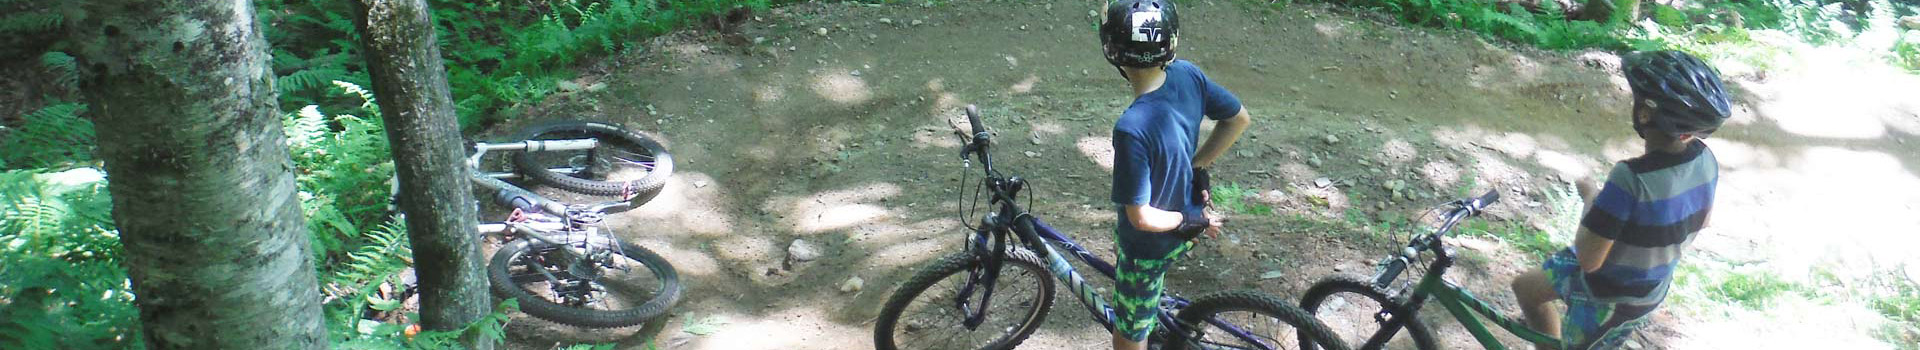 Mud City Adventures Mountain Bike Camp is for all abilities, but you should be comfortable on a bike. Call us our register online for this summer's MTB camp!